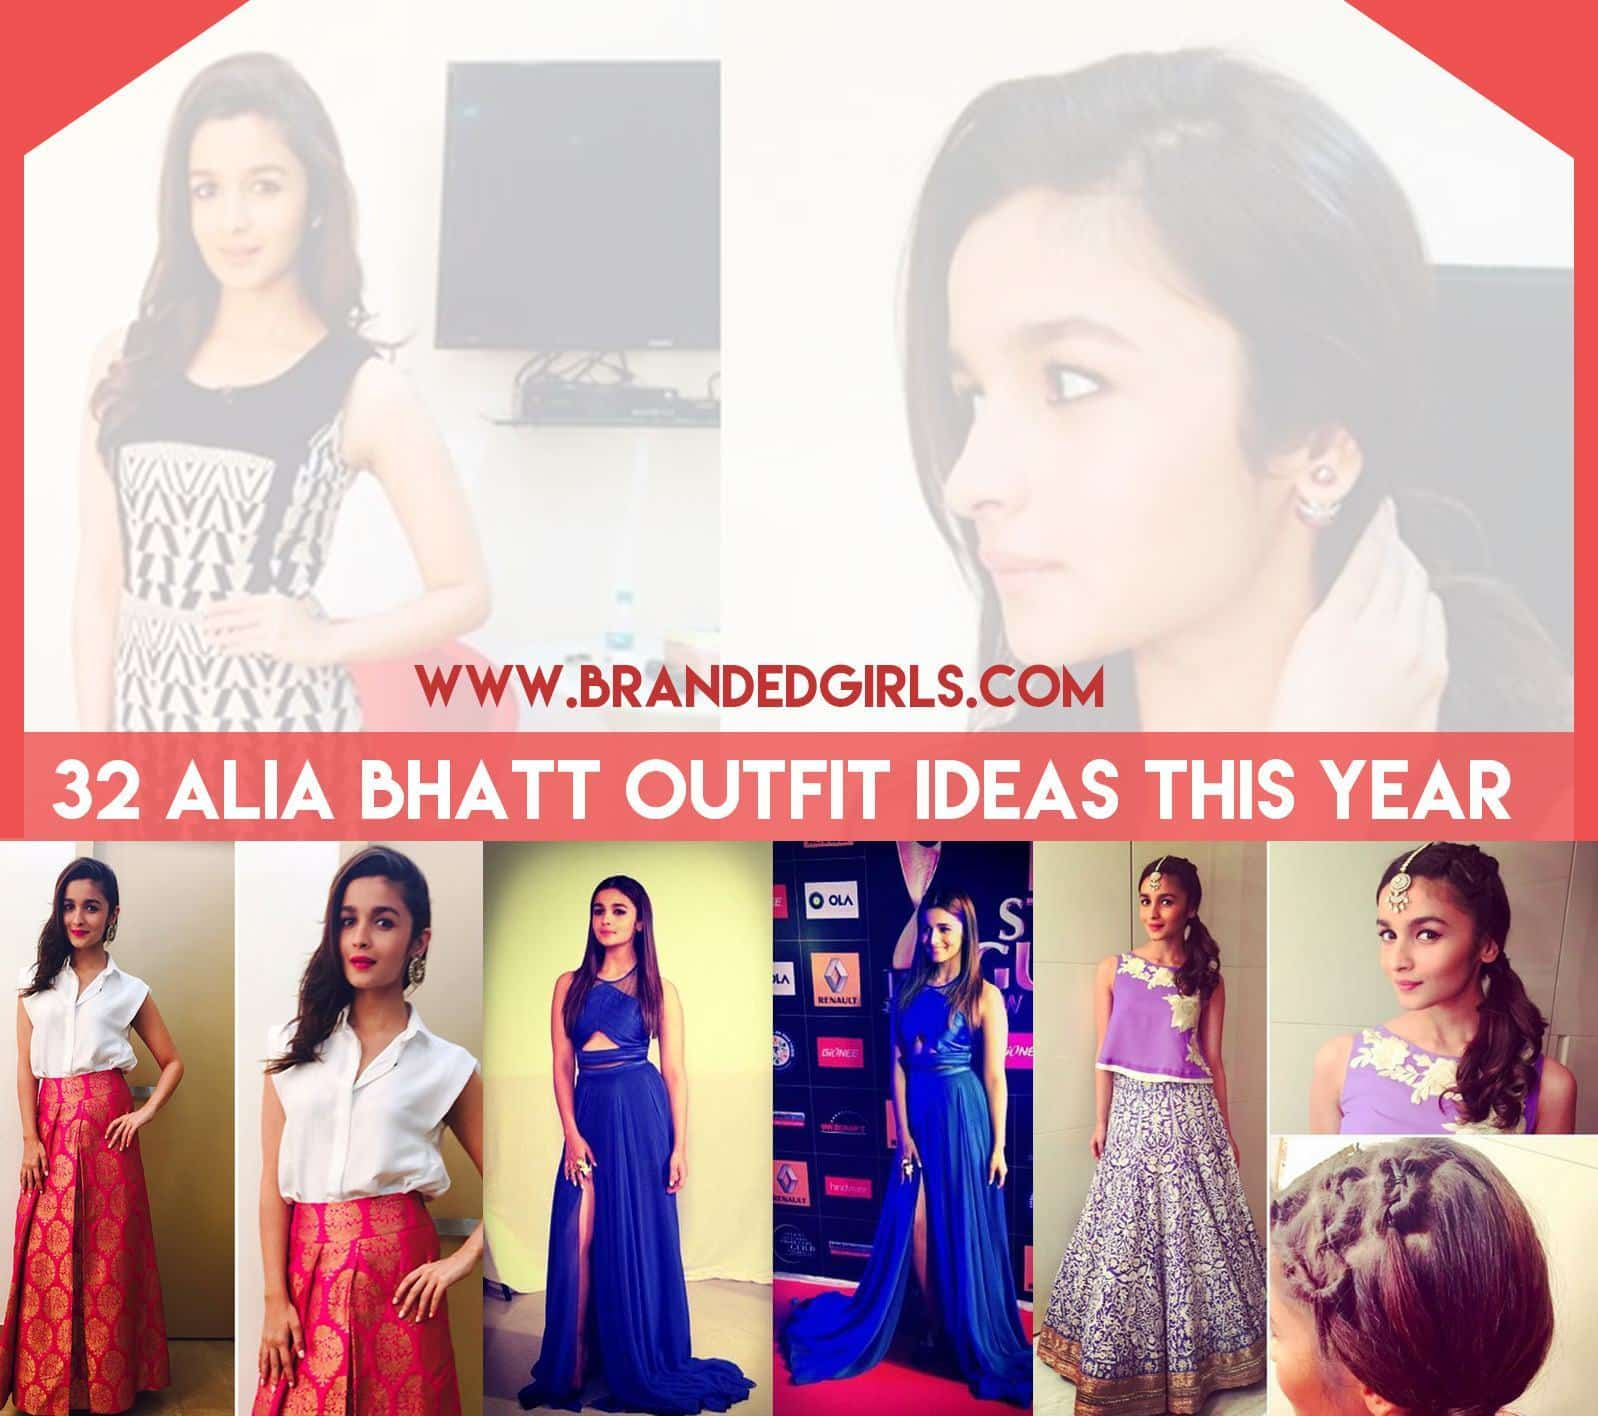 32 alia bhatt outfit ideas this year